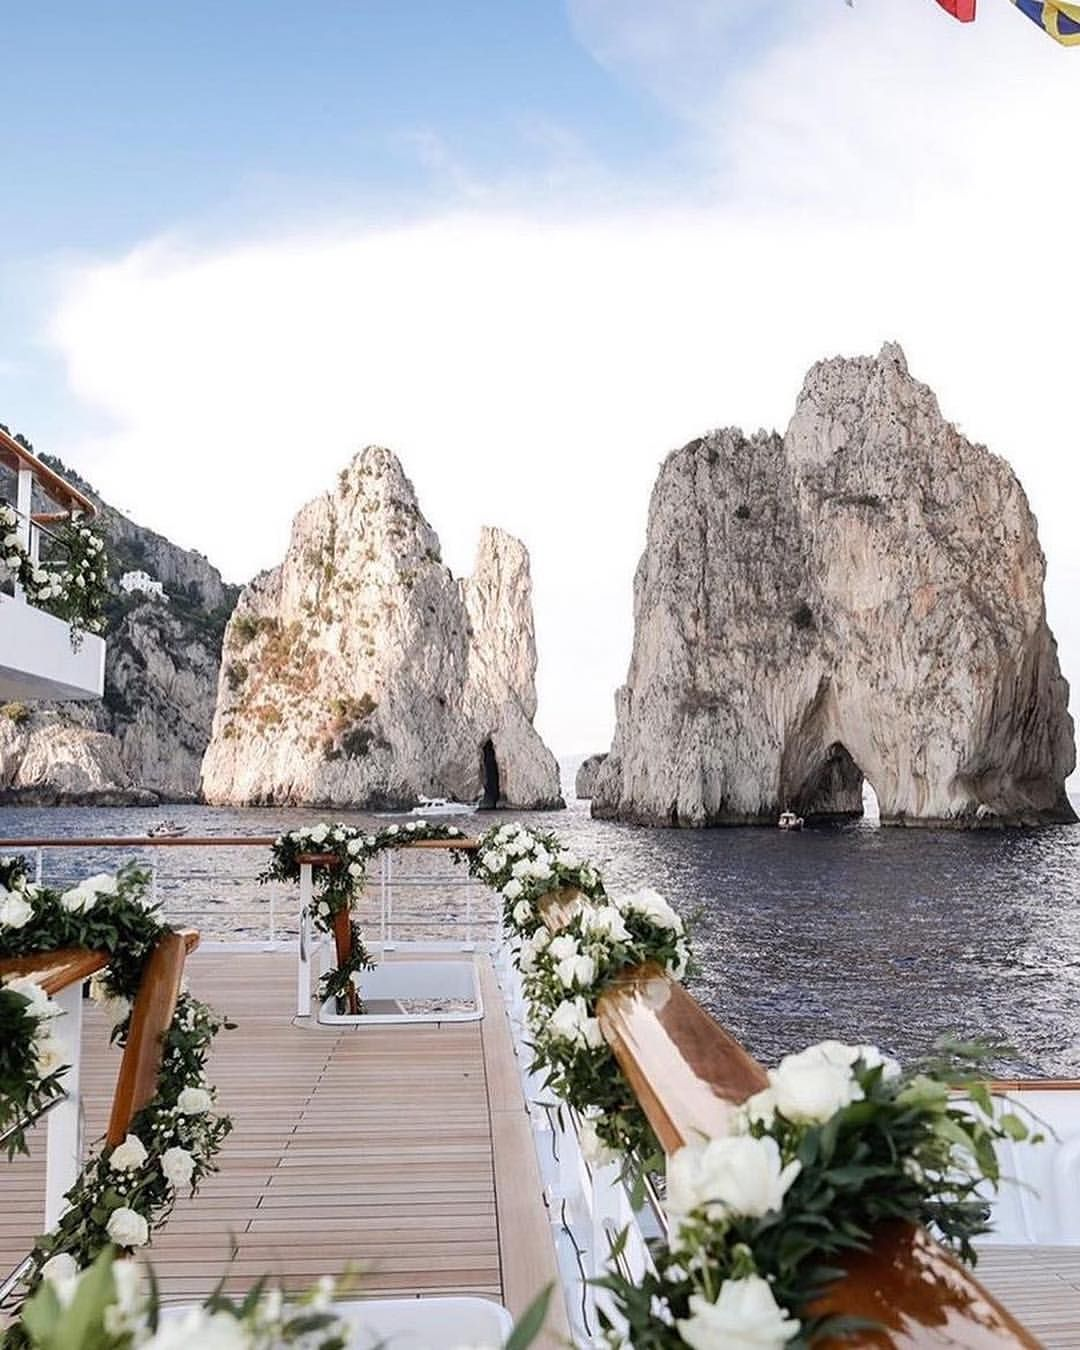 When You Get Married In Capri (With Images)